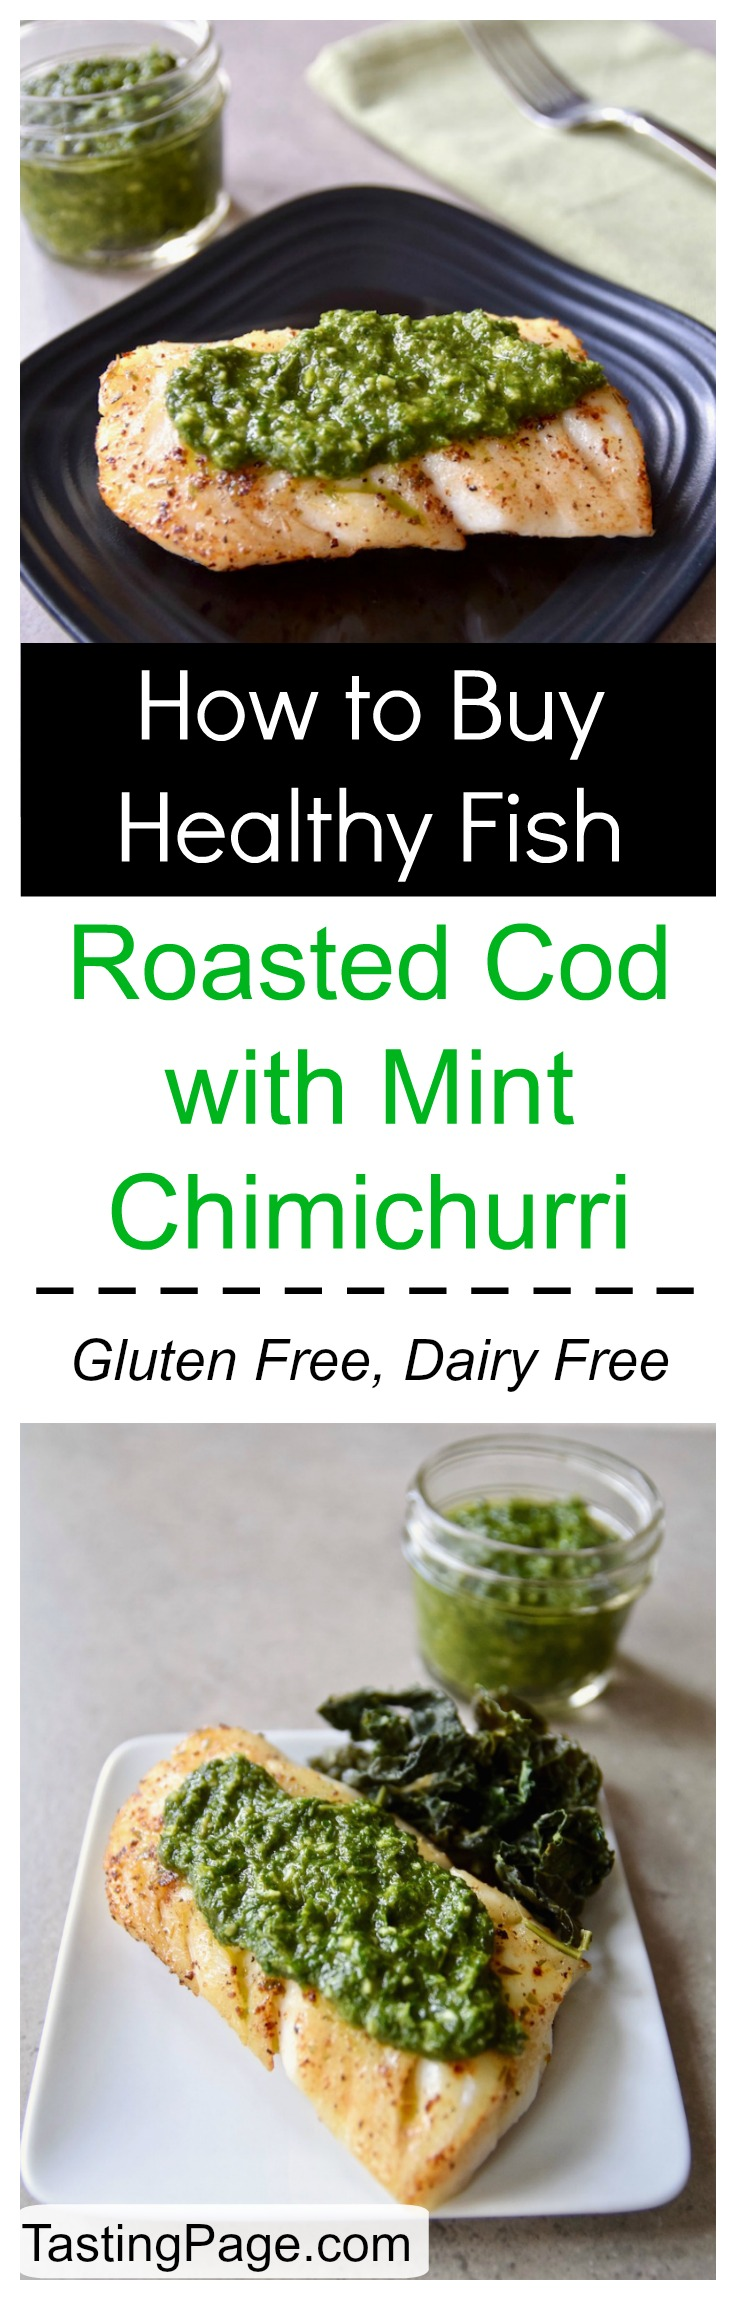 What to look for when choosing clean eating, toxin free fish and a recipe for roasted cod with mint chimichurri (gluten free, dairy free) | TastingPage.com